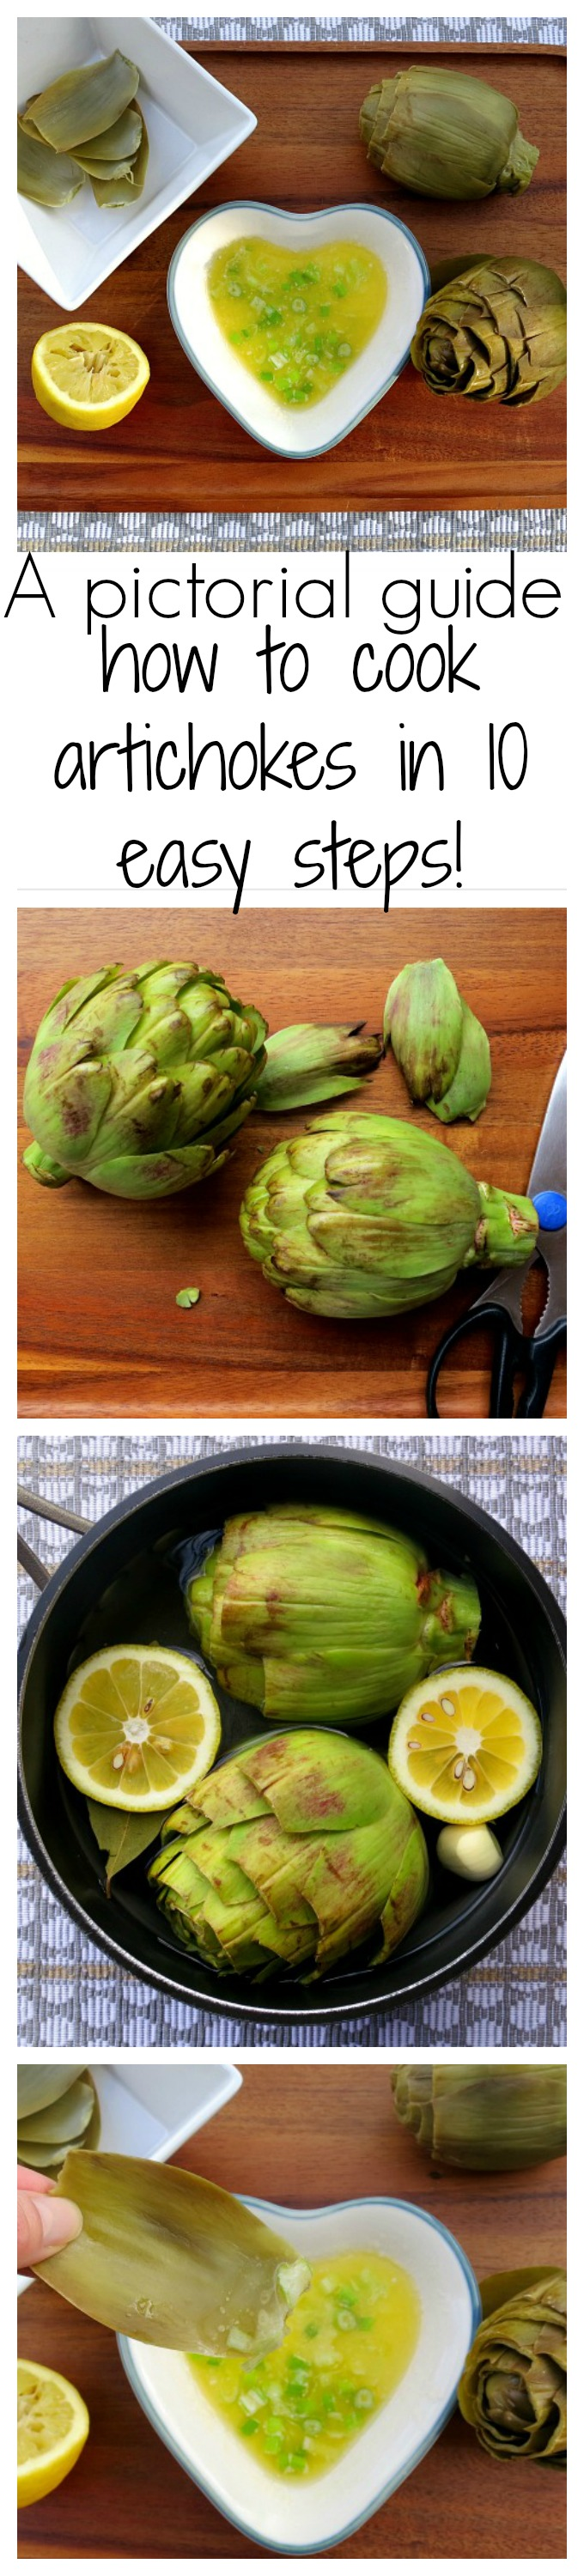 A Pictorial Guide How To Cook Artichokes in Ten Easy Steps